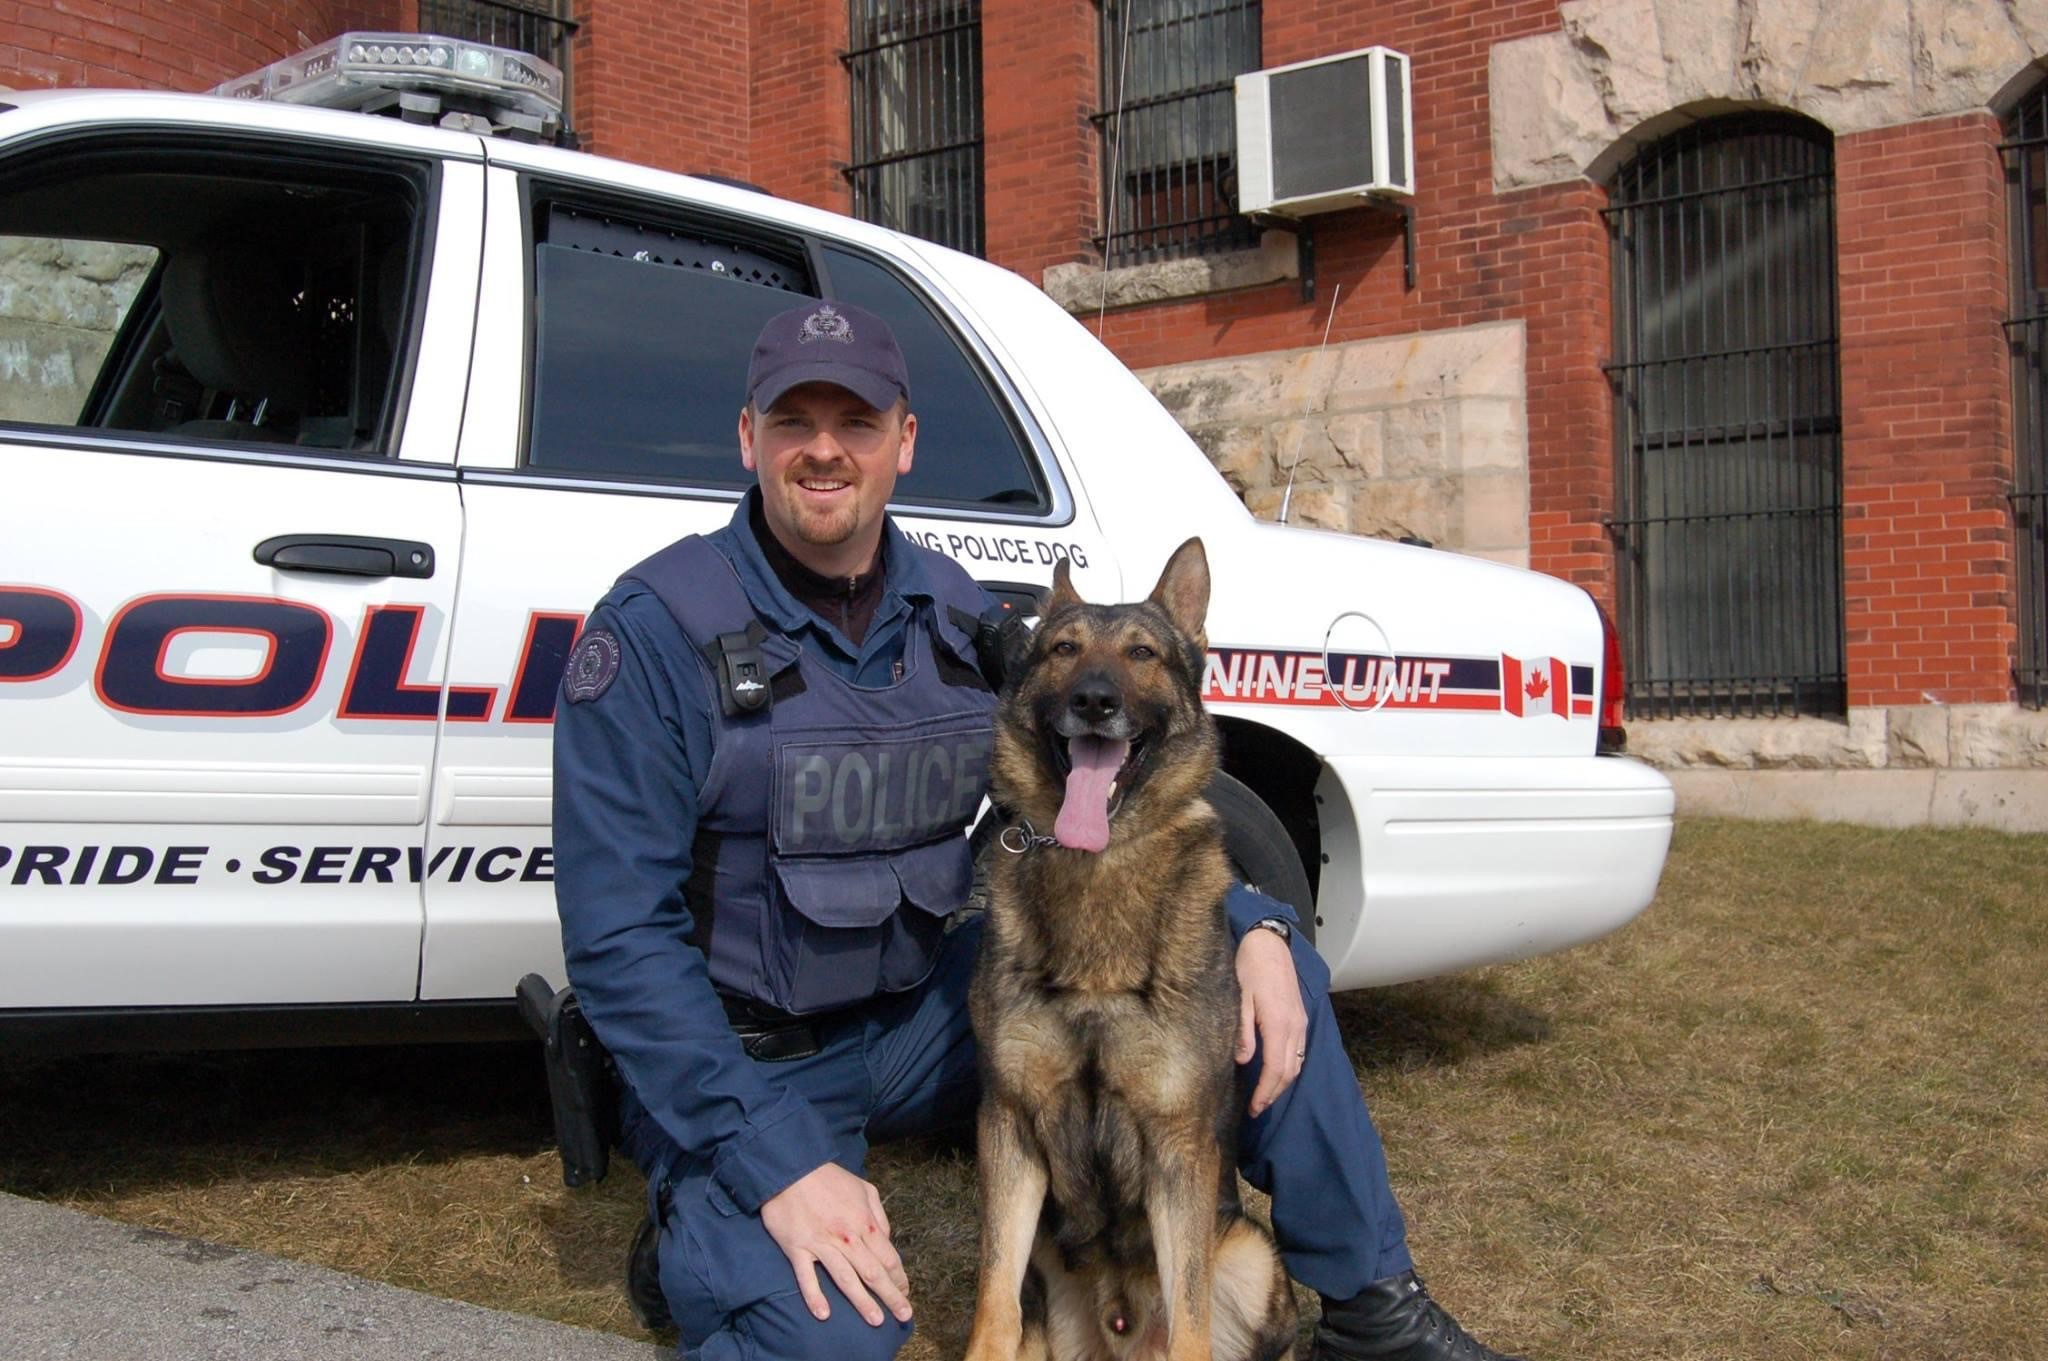 Constable Neumann and police service dog Trooper